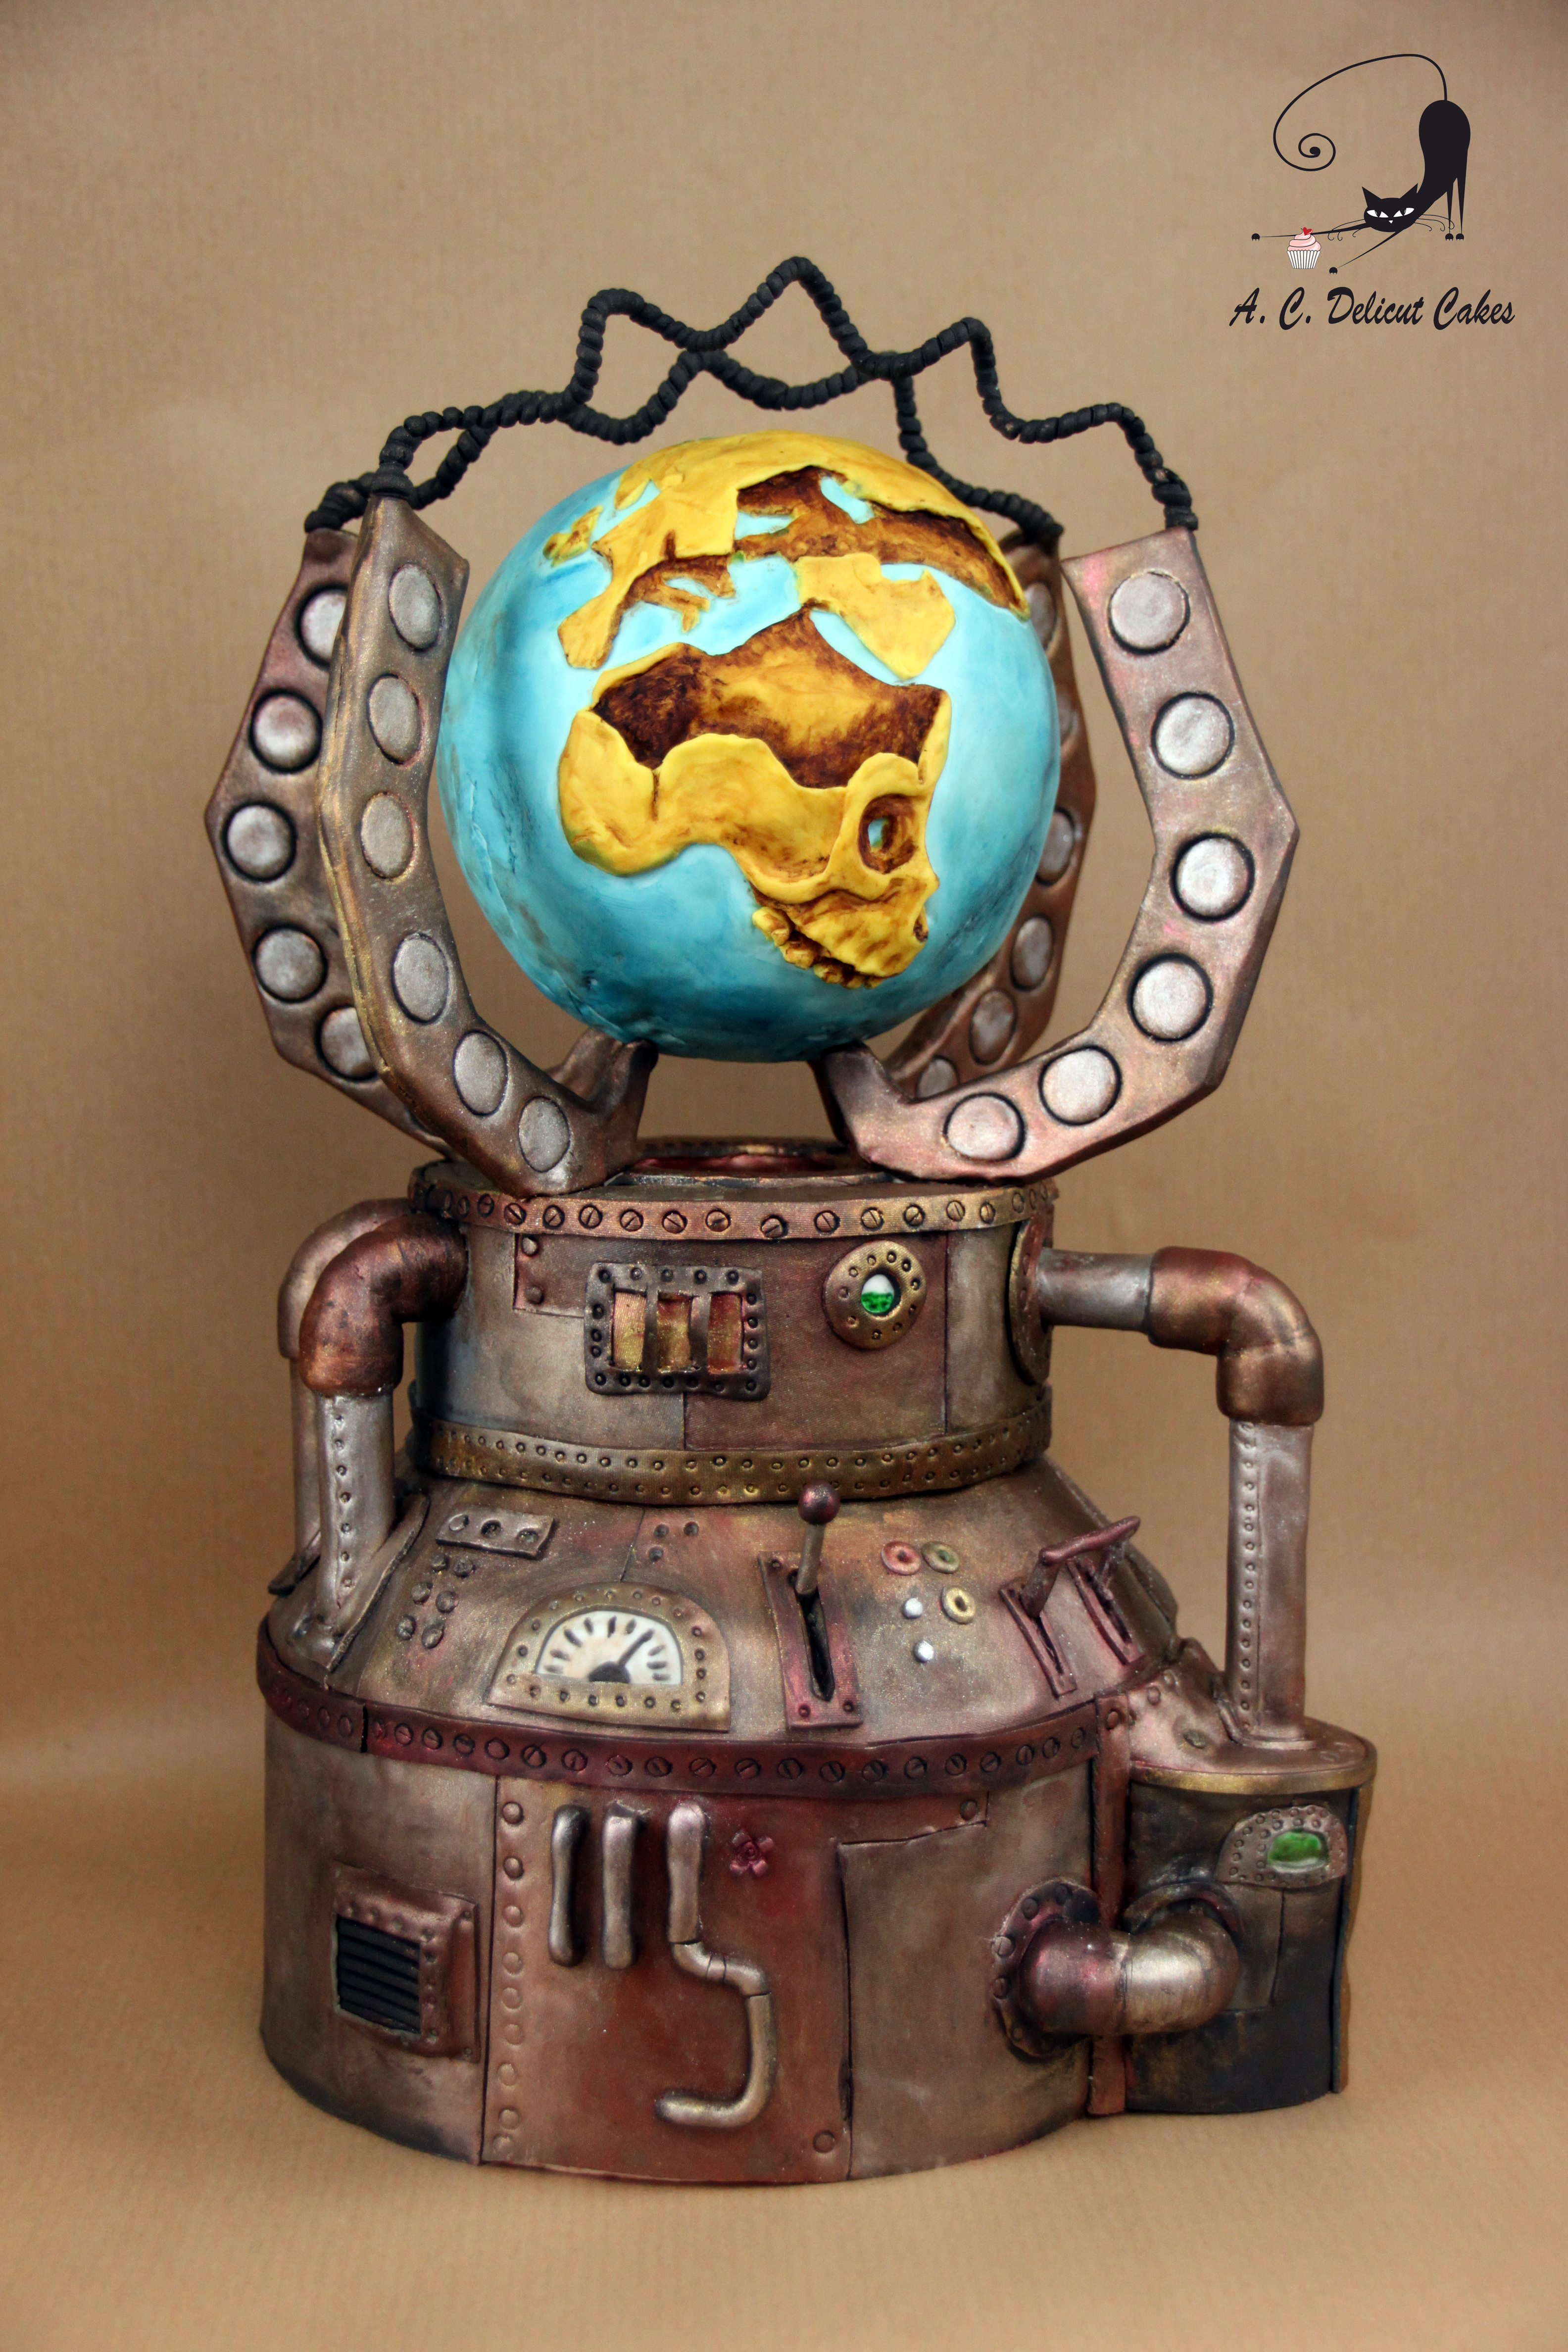 Steampunk novelty cake